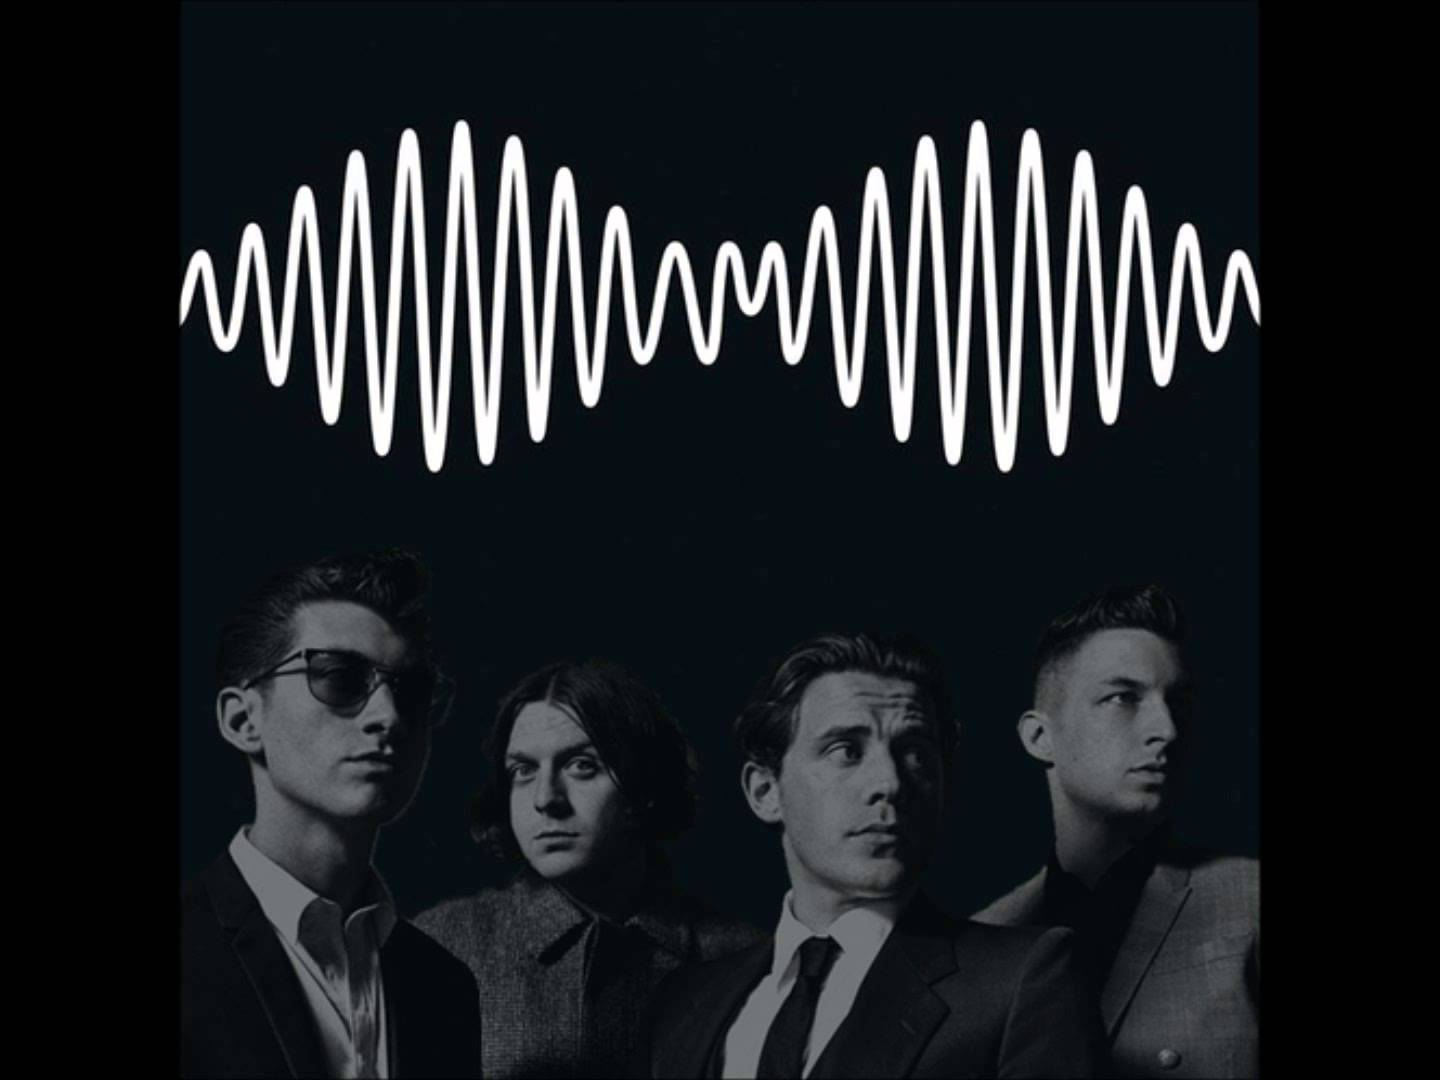 Anime Ipod Wallpapers Arctic Monkeys Wallpaper 1440x1080 1076